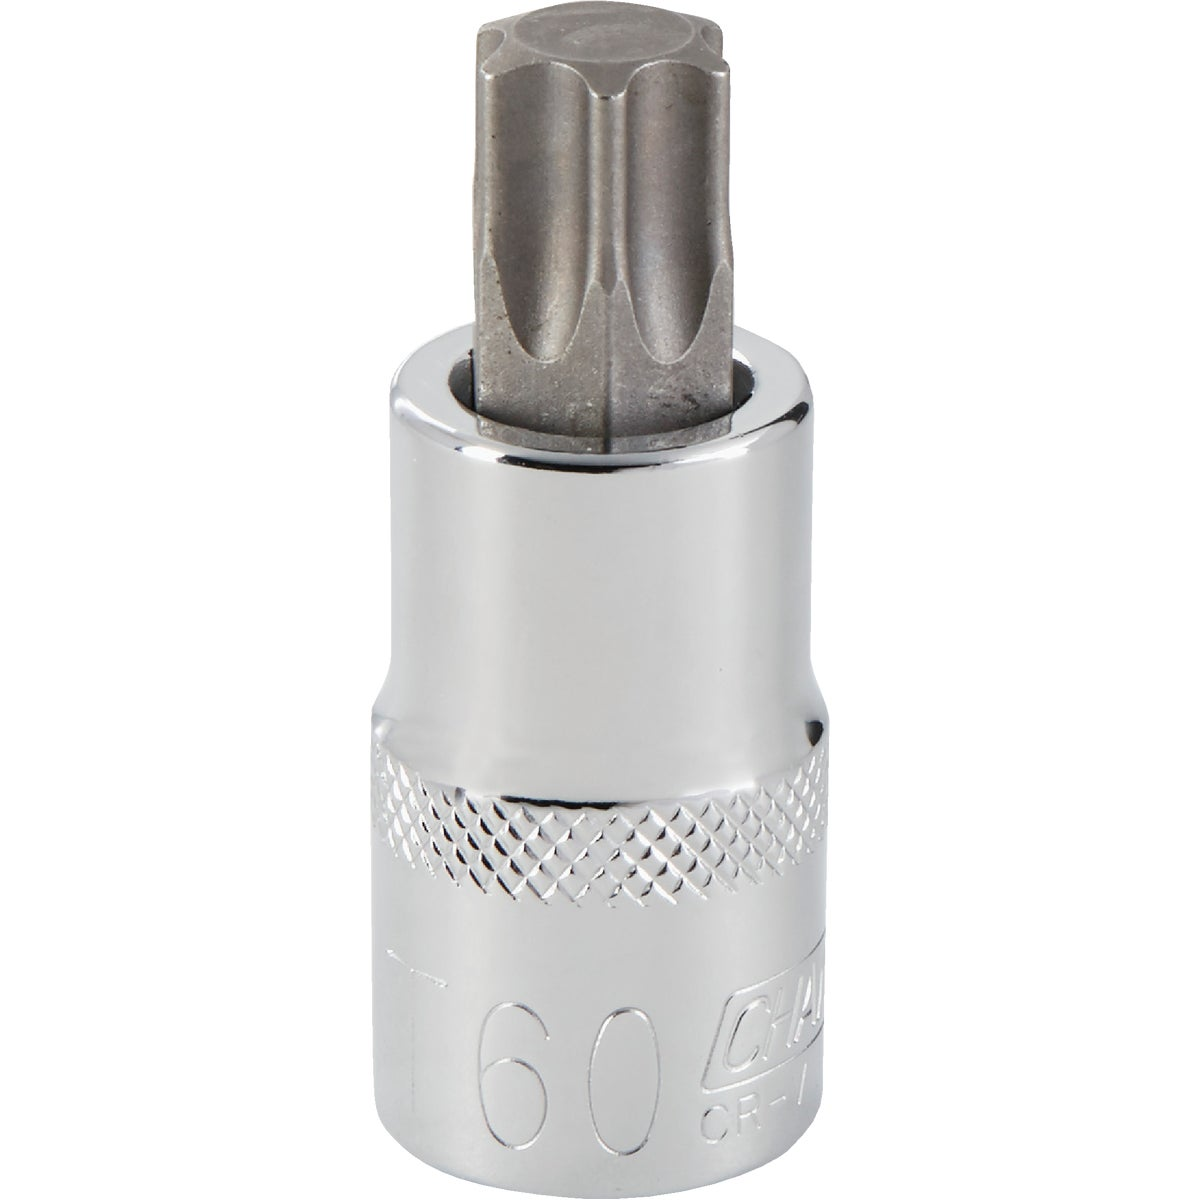 T60 TORX BIT SOCKET - 371025 by Bwt Inc